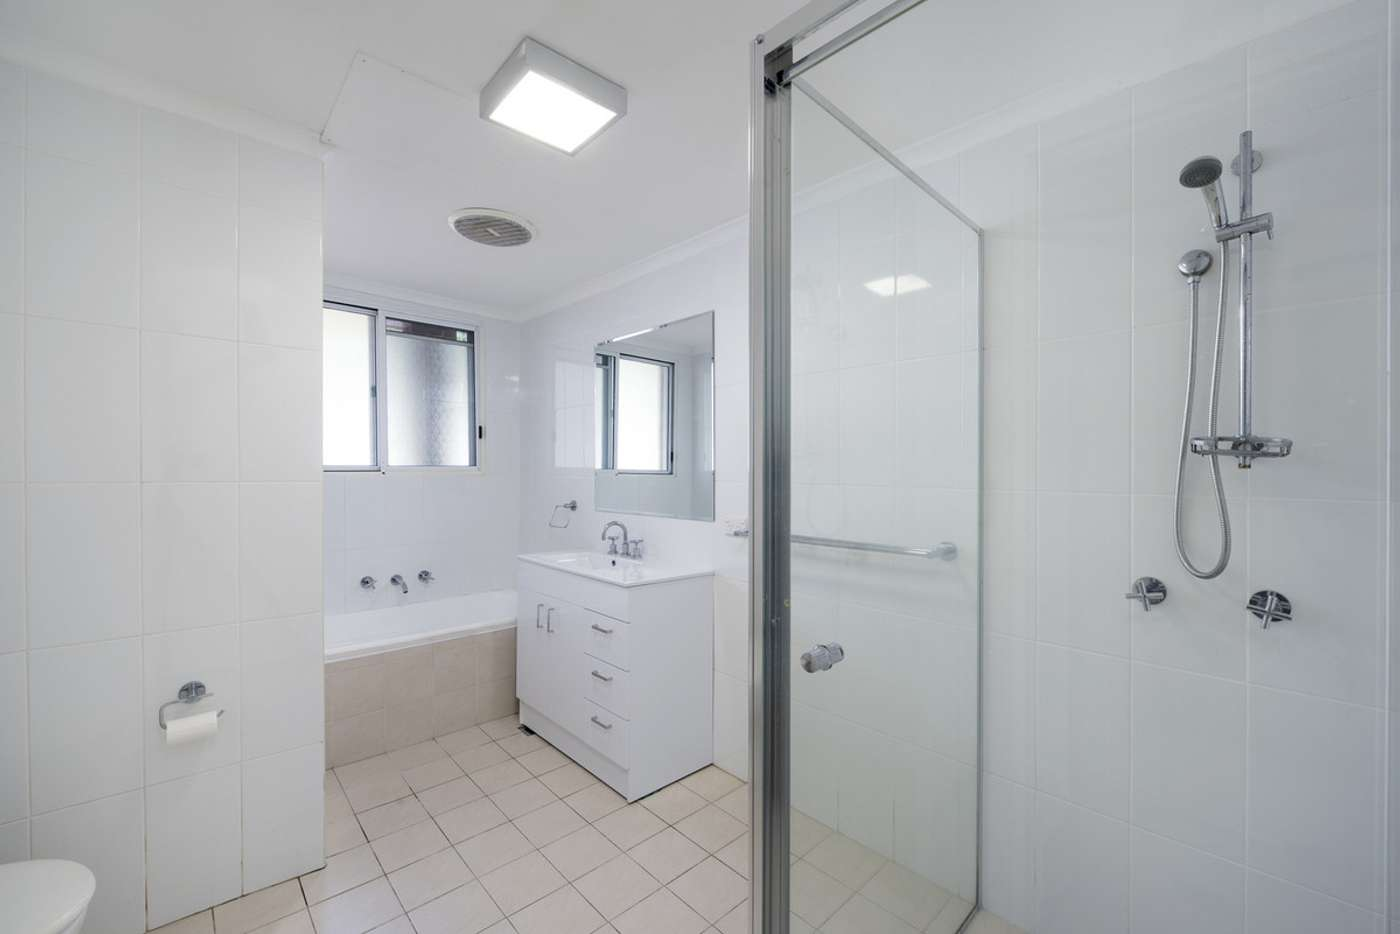 Sixth view of Homely apartment listing, 13/464-470 Pacific Highway, Lane Cove NSW 2066